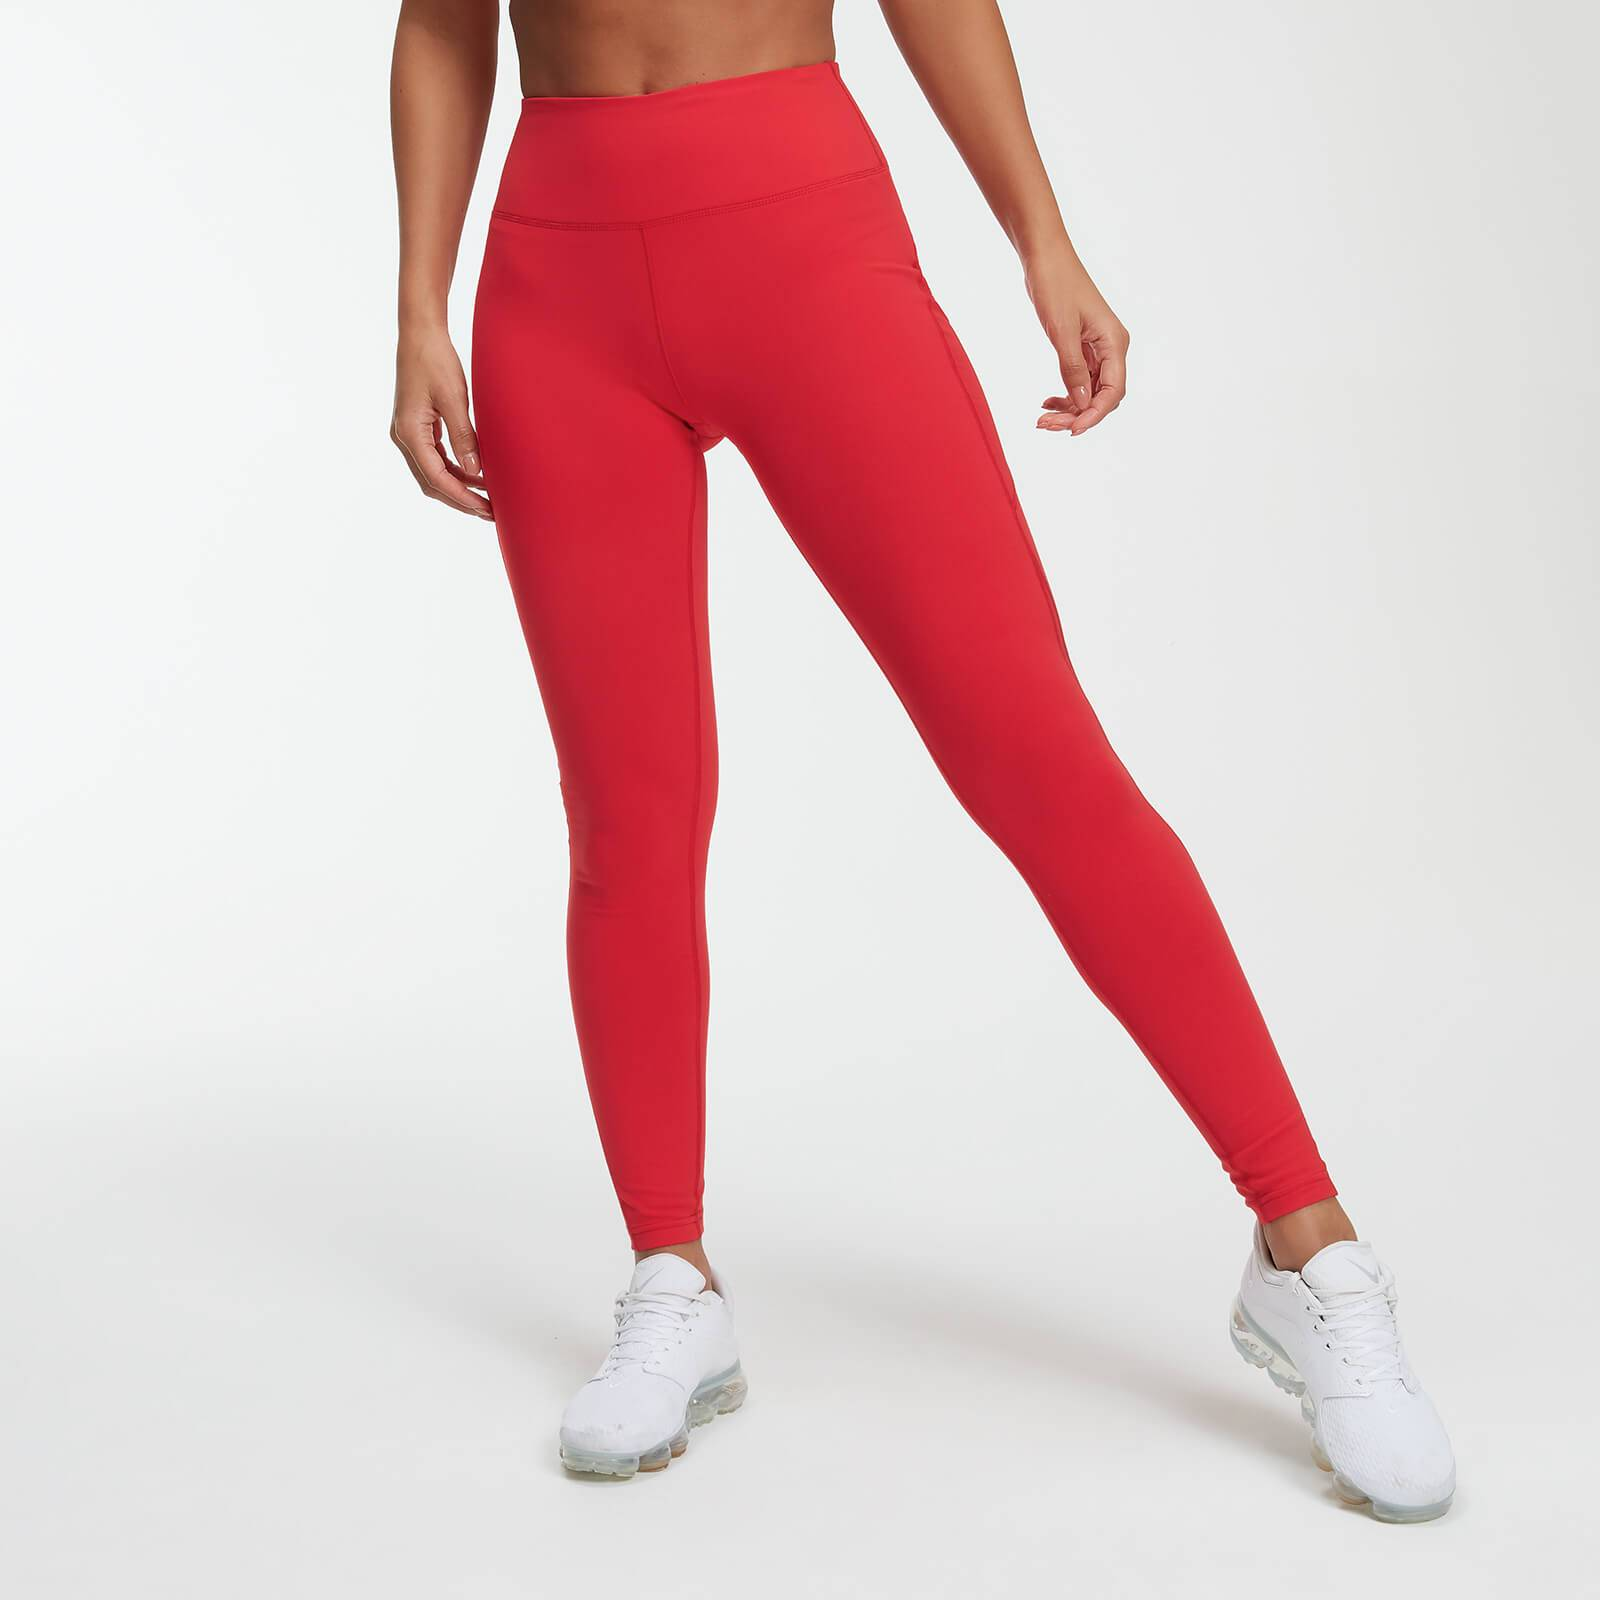 MP Legging MP Power en résille pour femmes – Danger - S